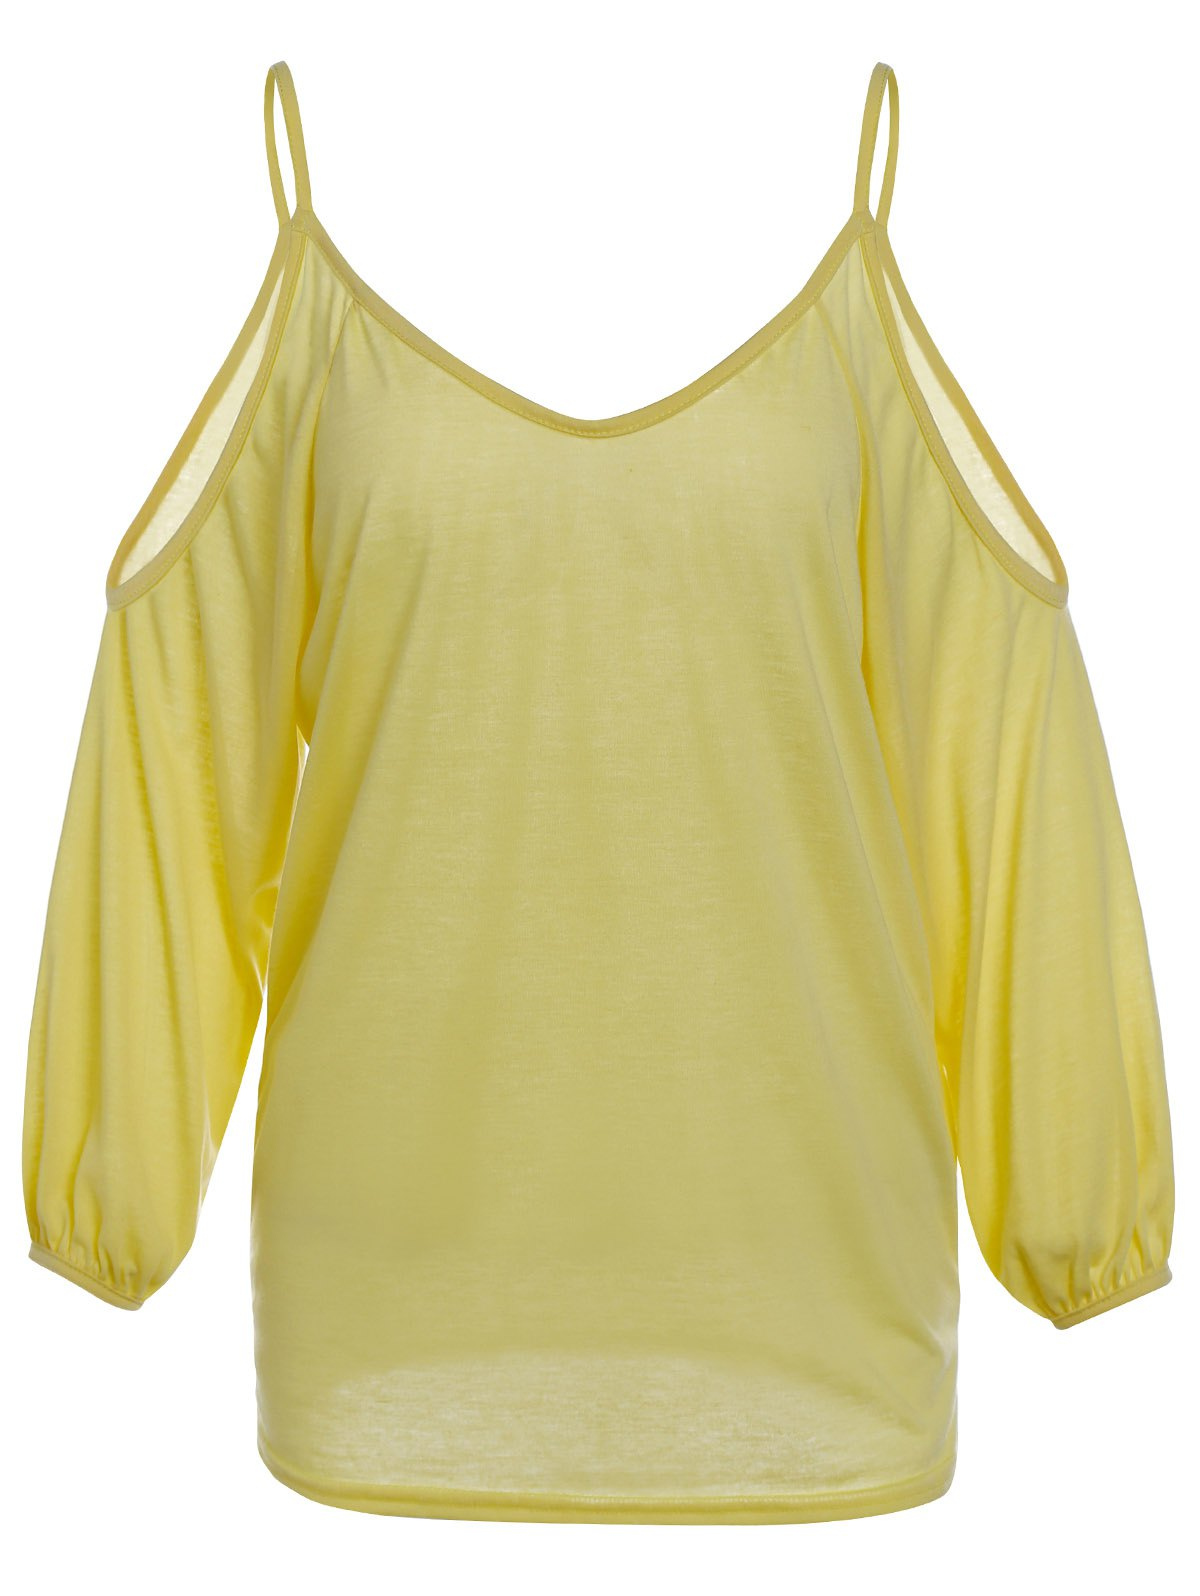 Stylish Women's Spaghetti Strap Yellow Long Sleeve T-Shirt